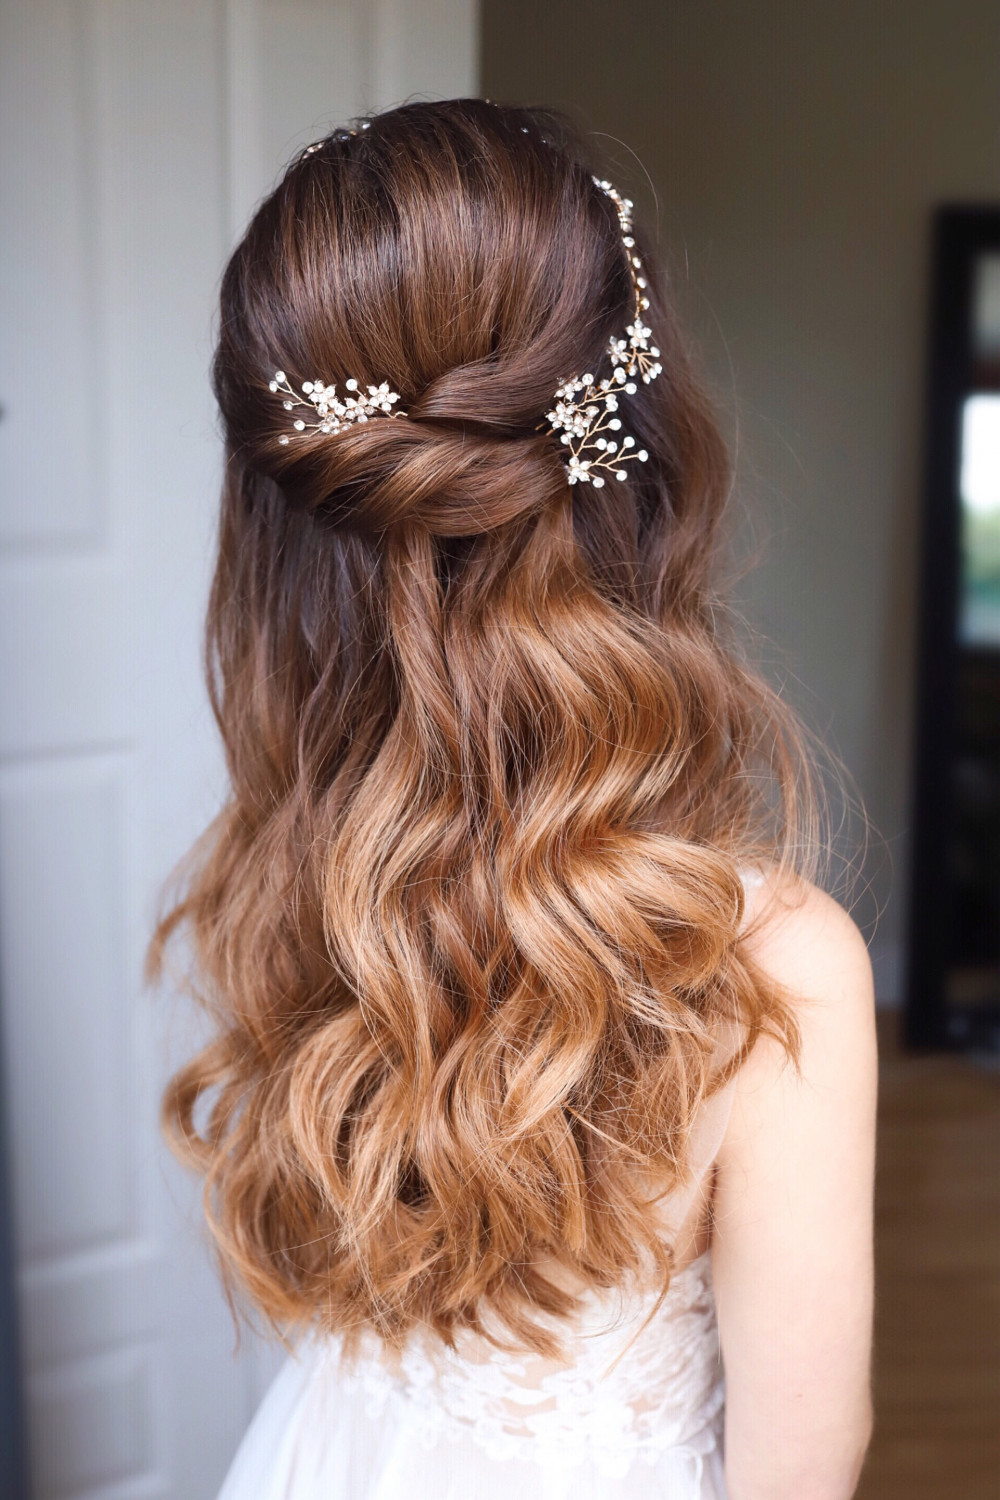 A half up half down wedding hair style with soft bohemian waves and pretty golden sparkly bridal hair pins from @makemebridal.accessories - Make Me Bridal Artist: Melissa Clare Makeup & Hair. Photography by: Katy Djokic. #bohemian #halfuphair #bridalhair #brunette #halfuphalfdown #hairaccessories #boho